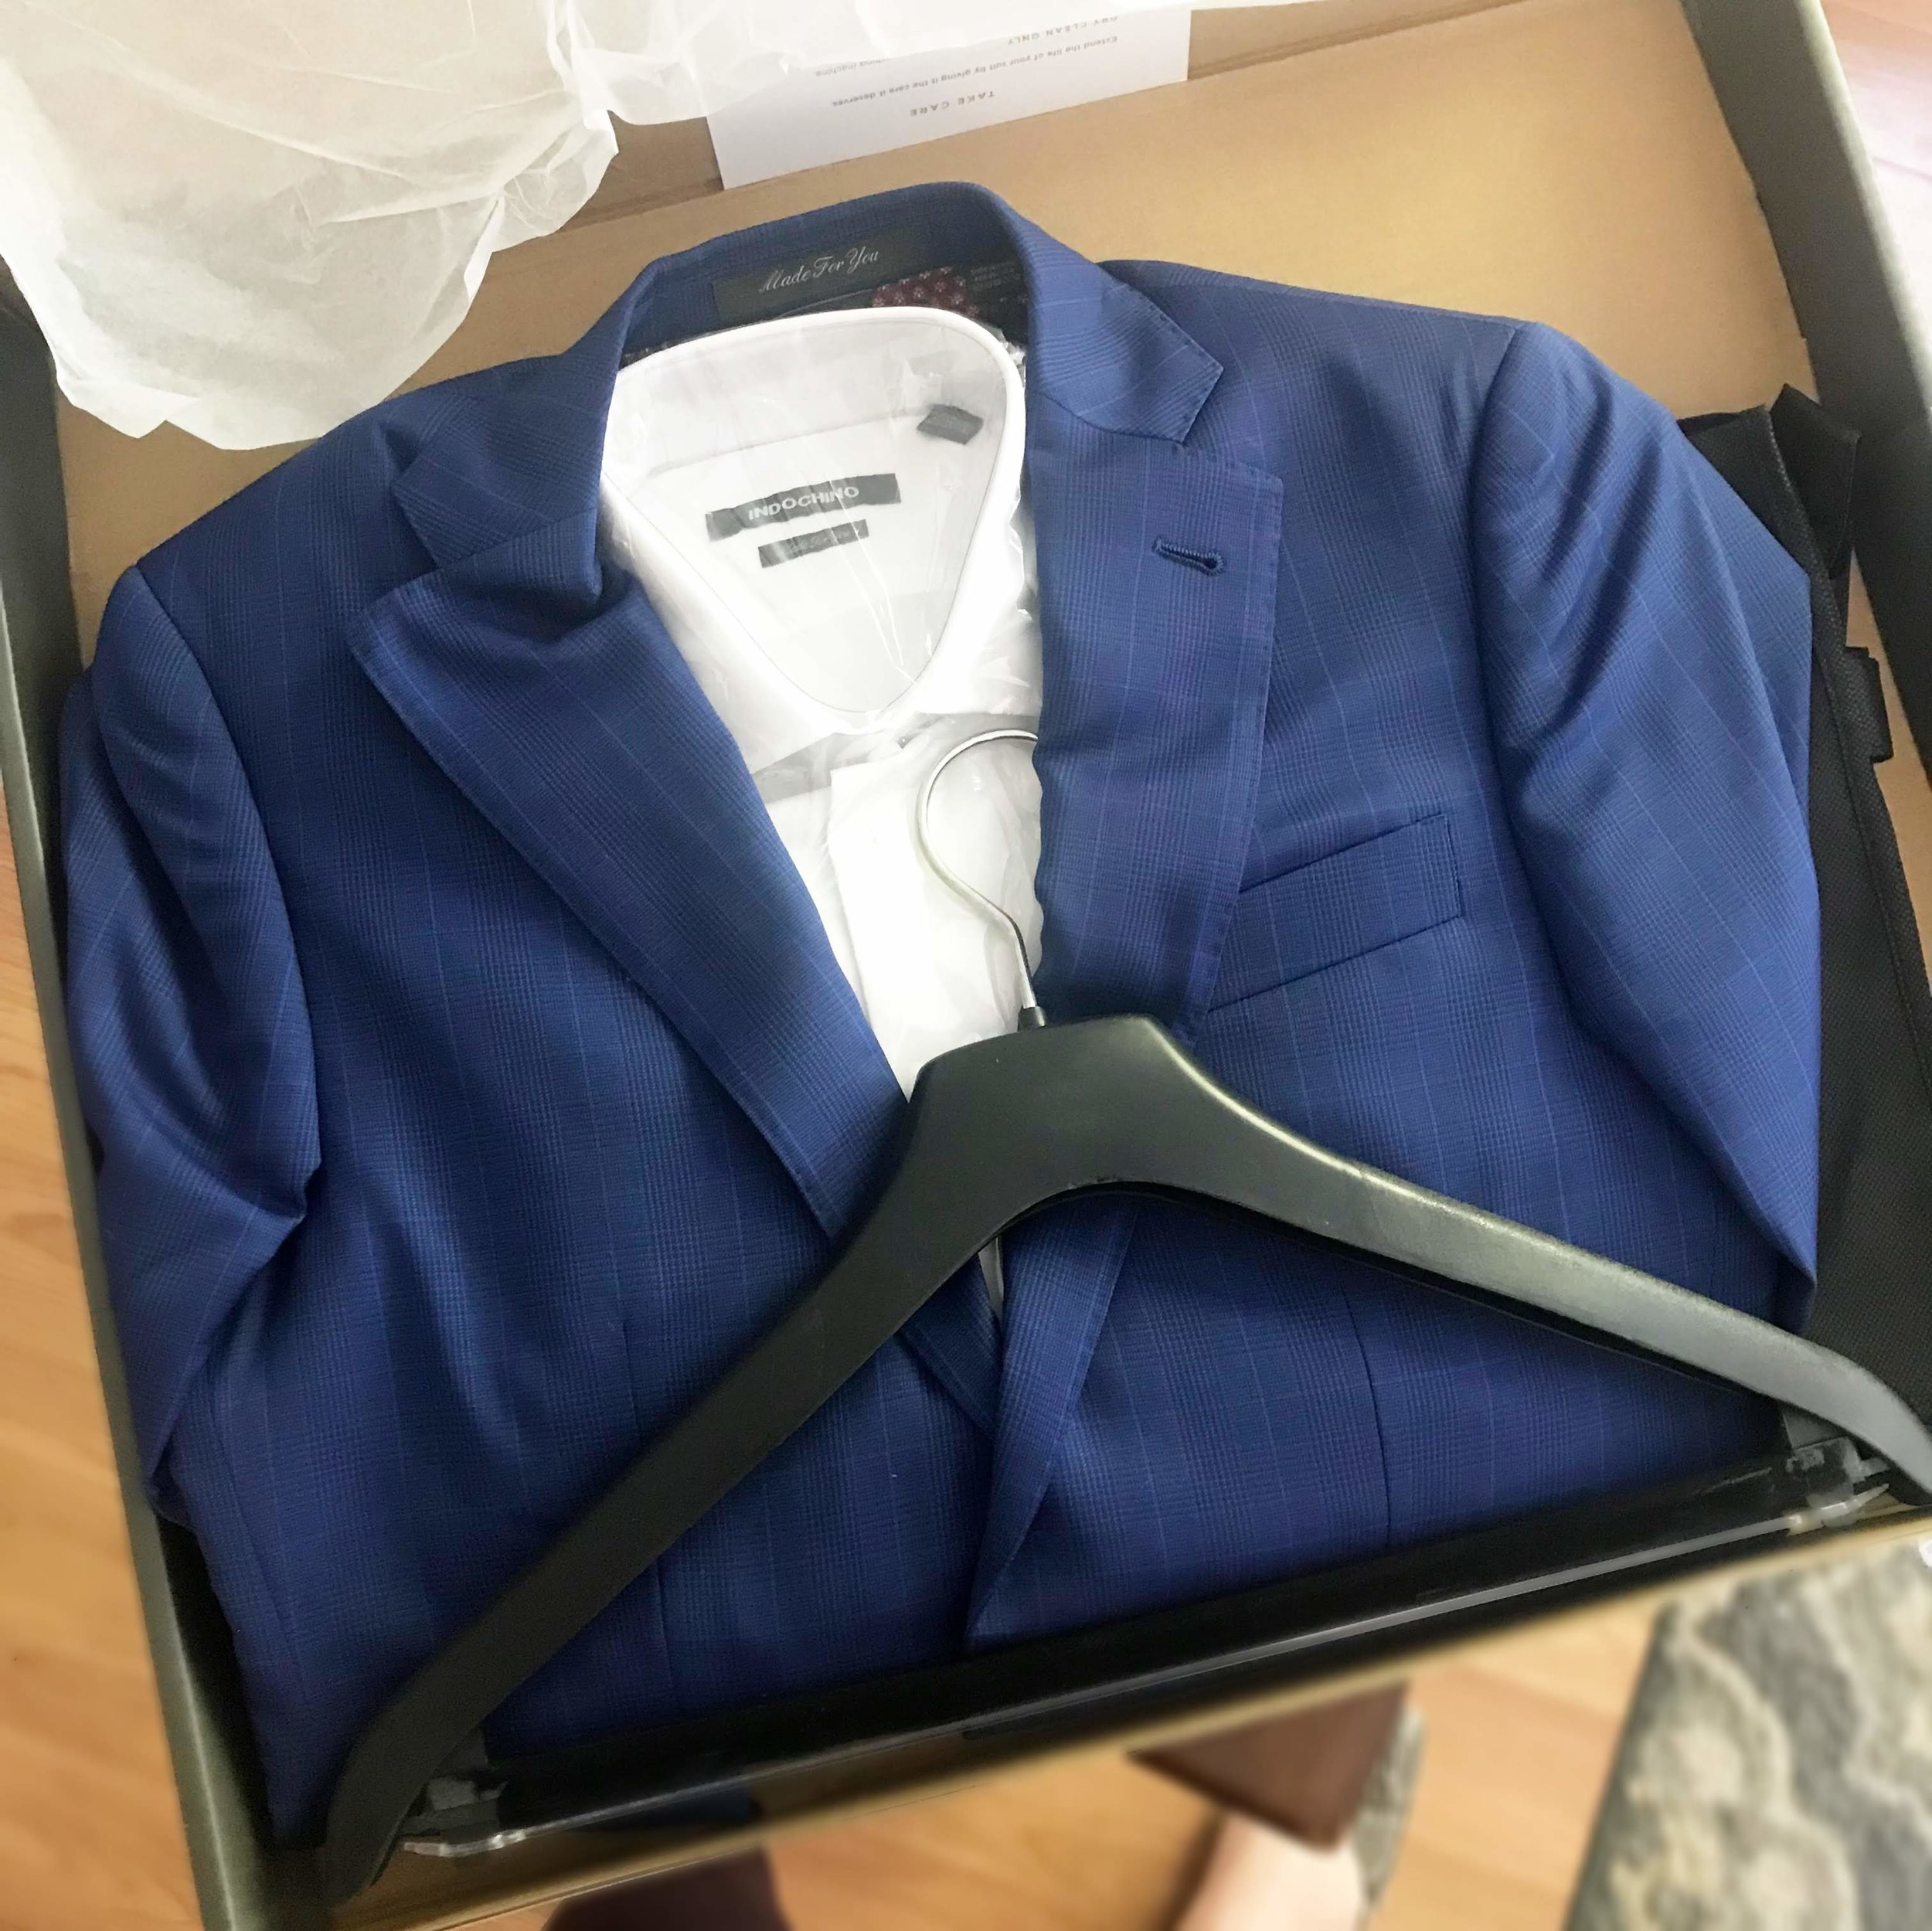 Your new suit comes with a very nice hanger and a garment bag.